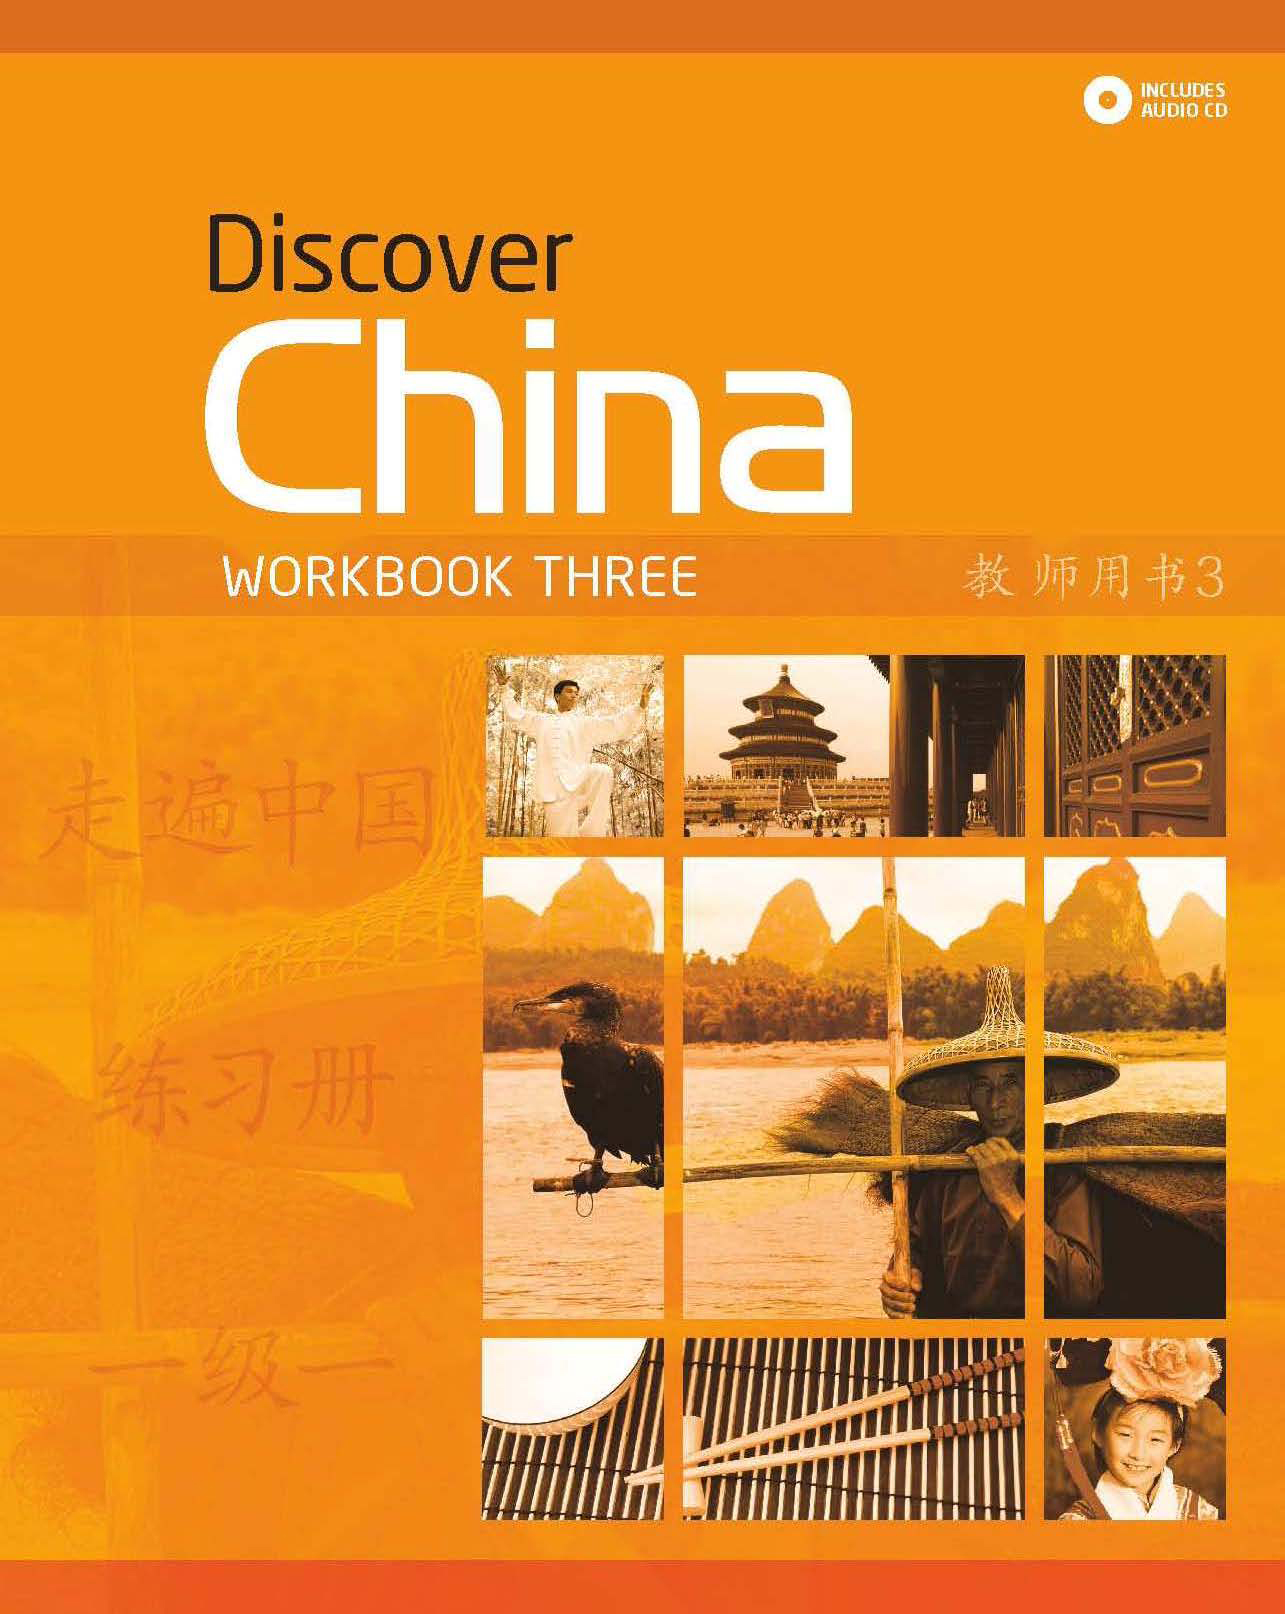 Discover China Level 3 Workbook & Audio CD Pack